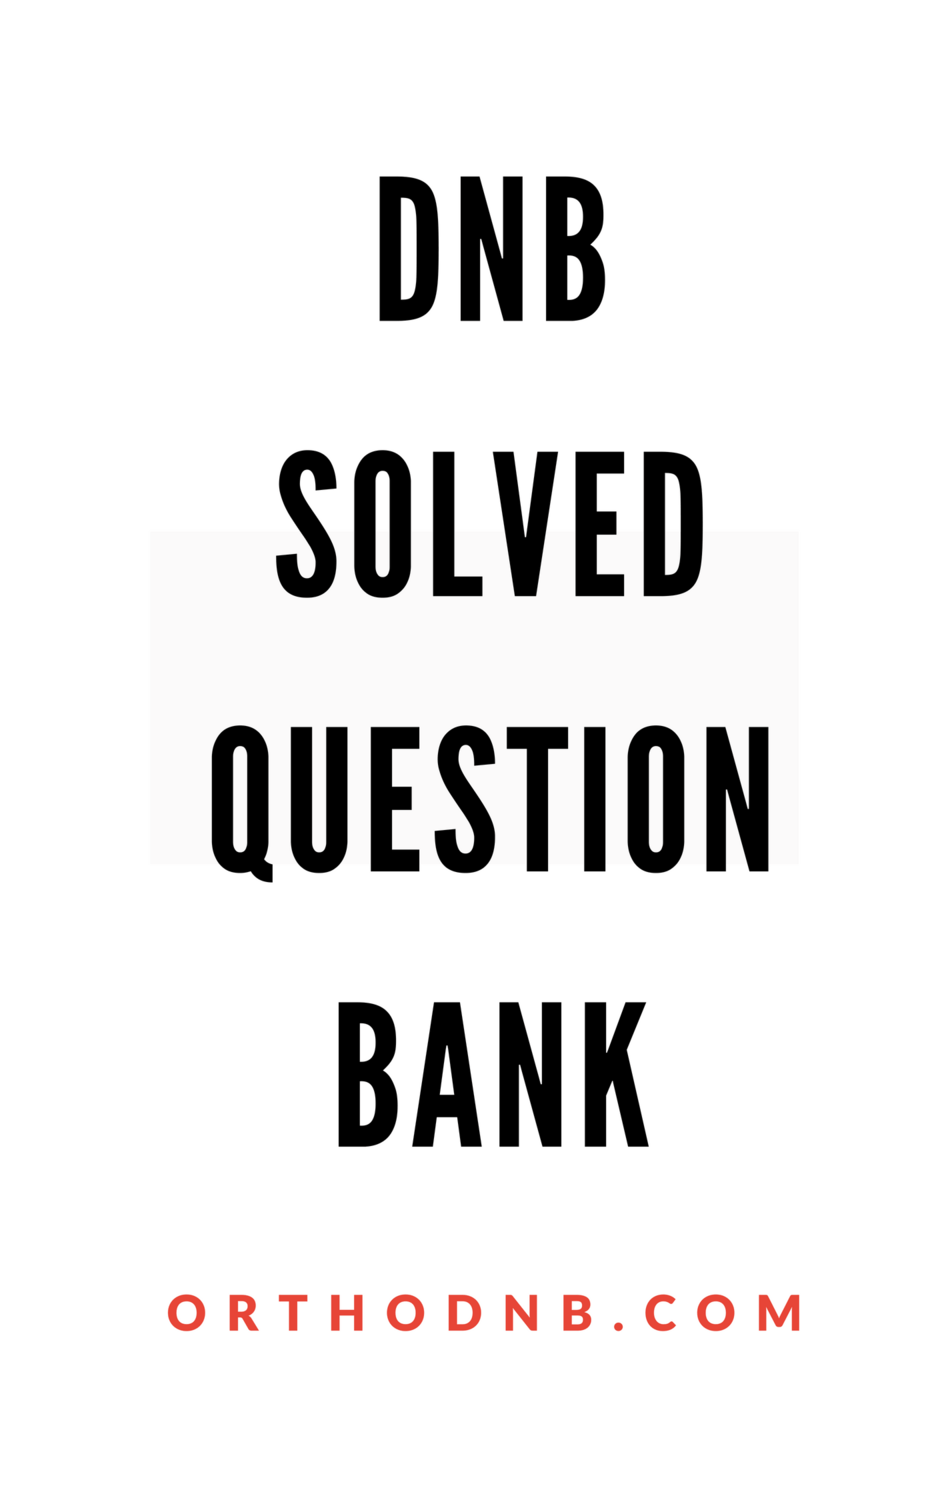 DNB Solved Question Bank with Answers online access option